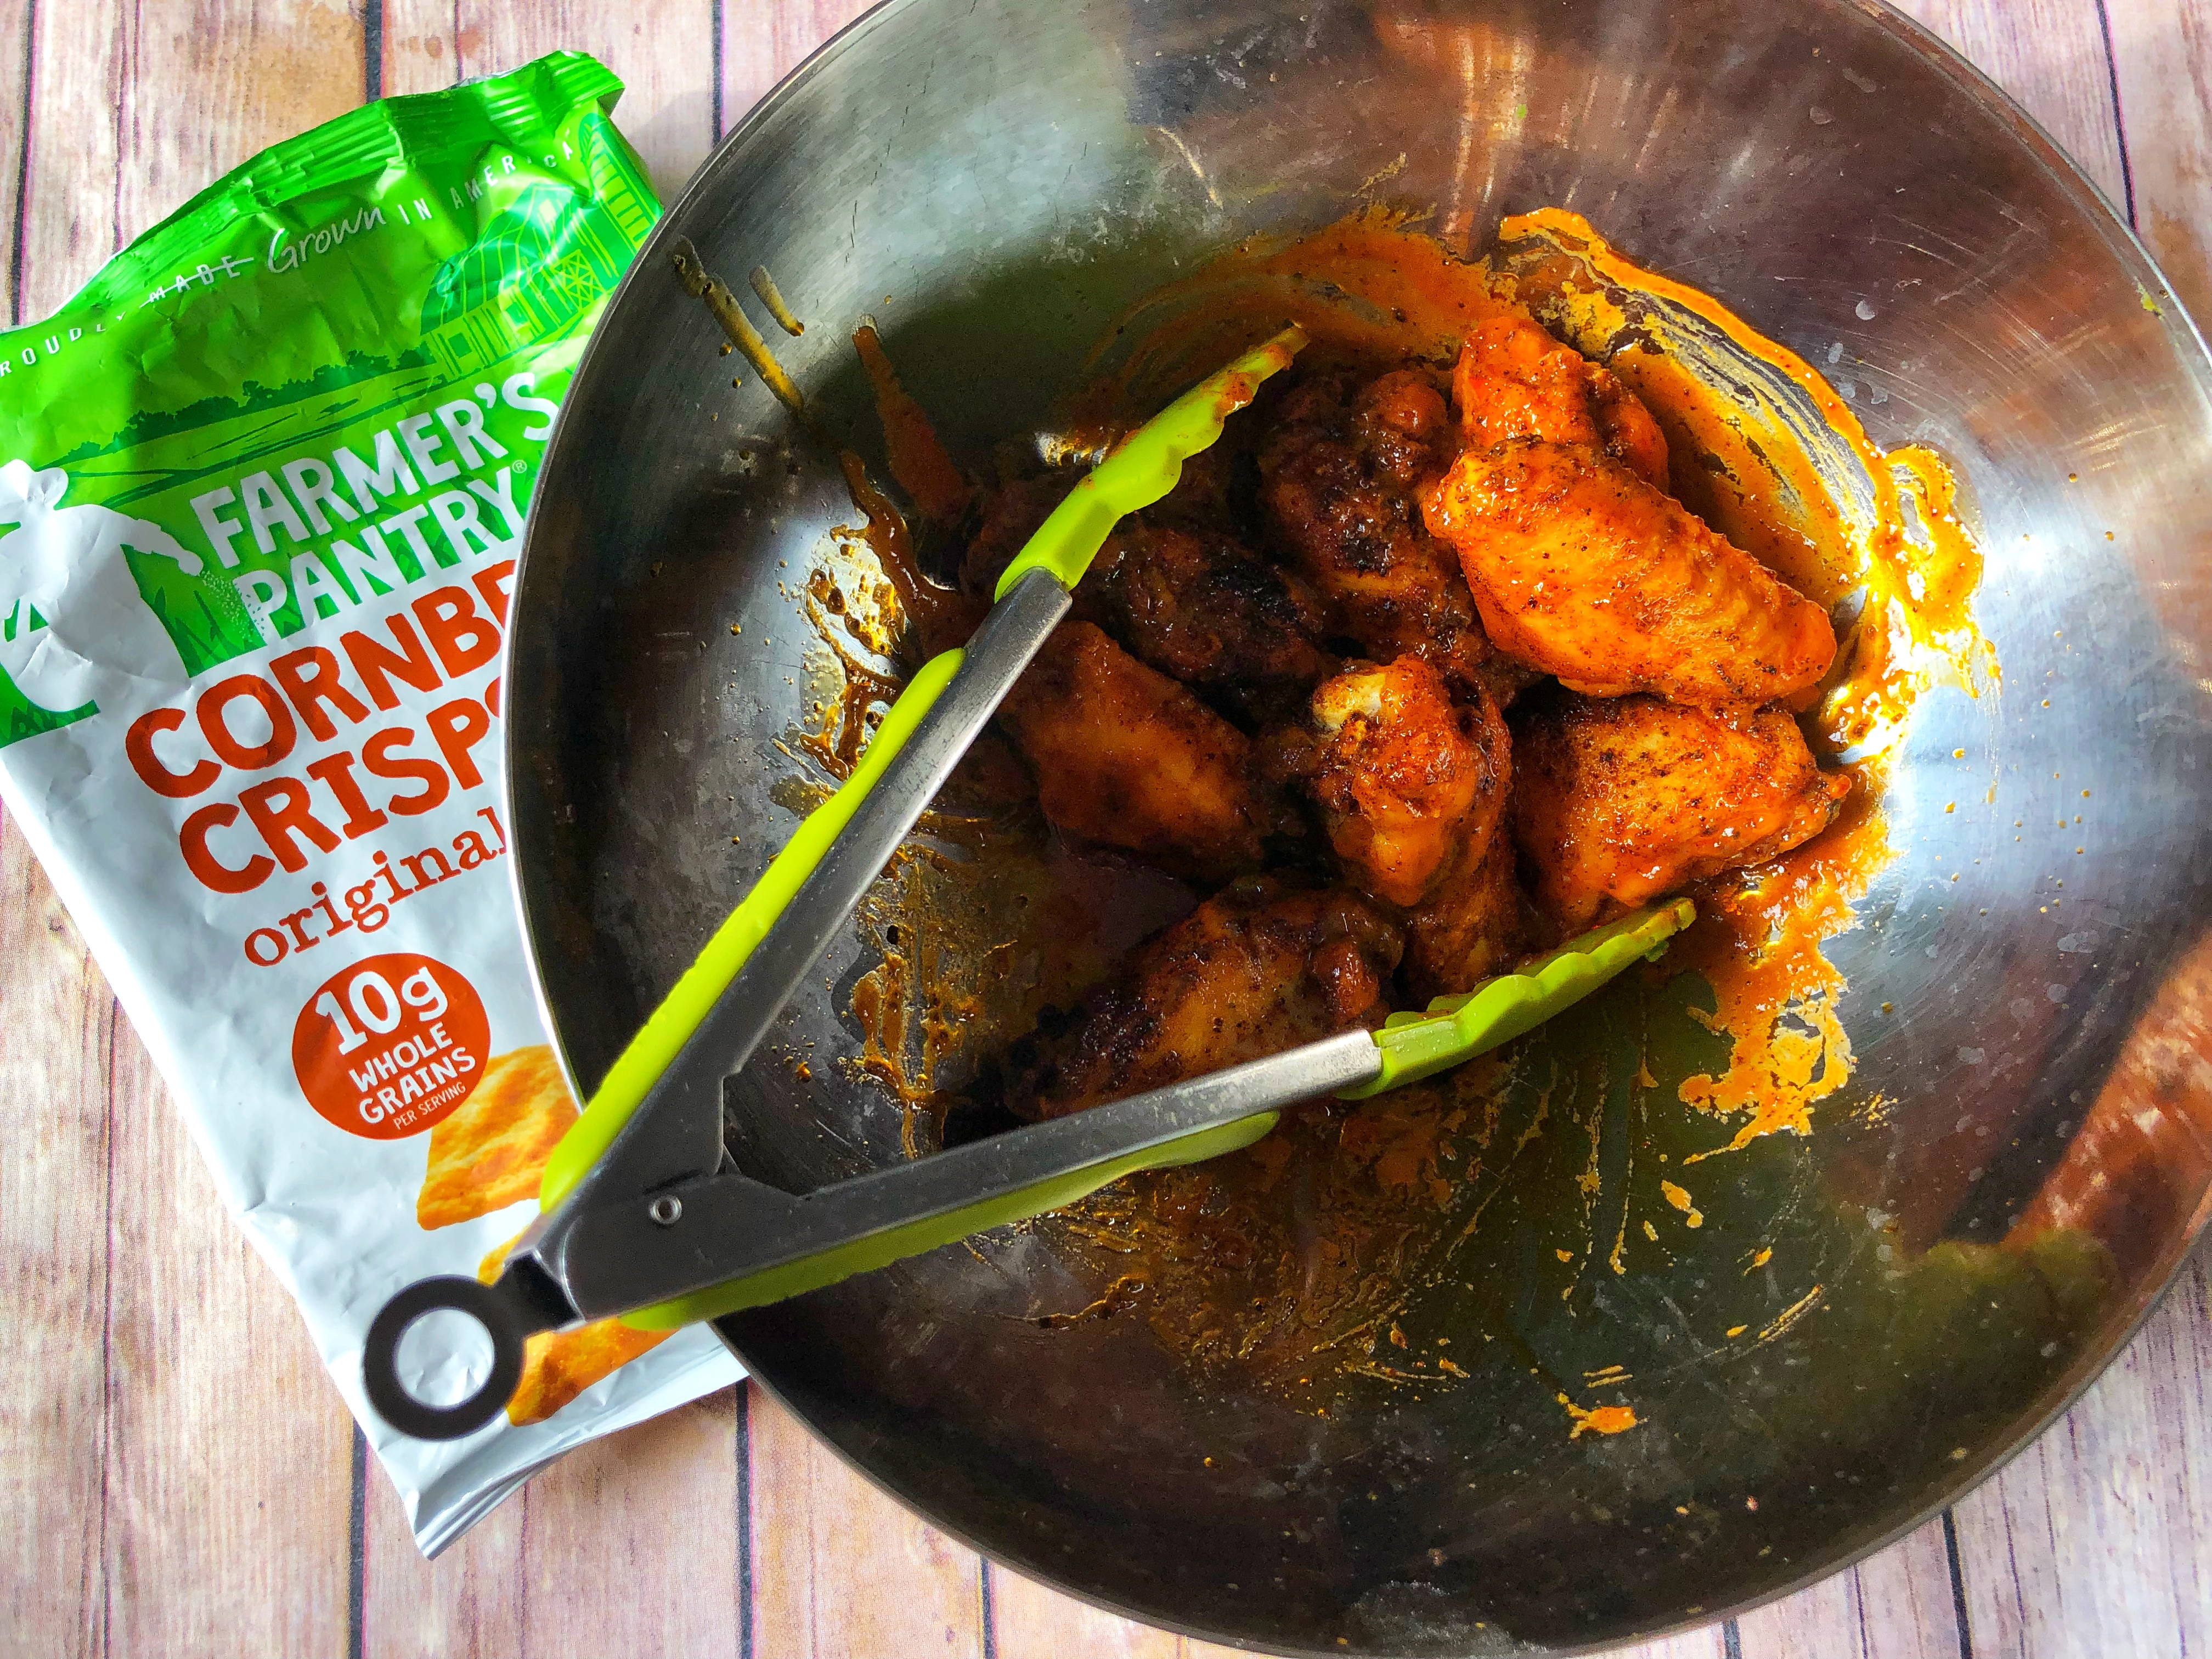 Farmer's Crispy Buffalo Chicken Wings